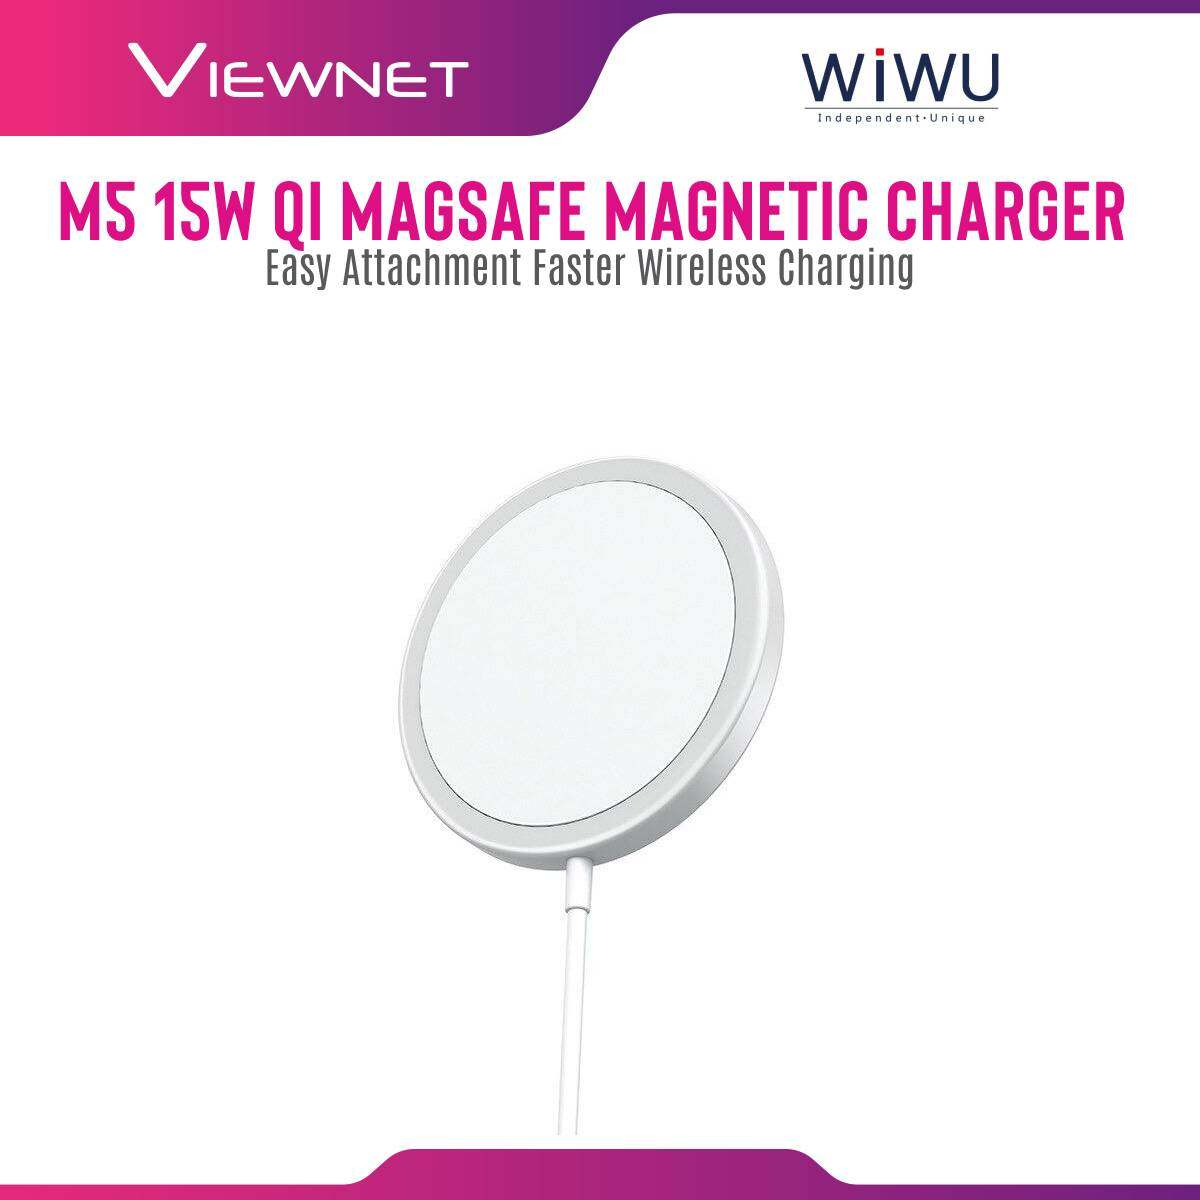 WIWU M5 15W QI Standard Magsafe Magnetic Fast Charging Wireless Charger for iPhone 12